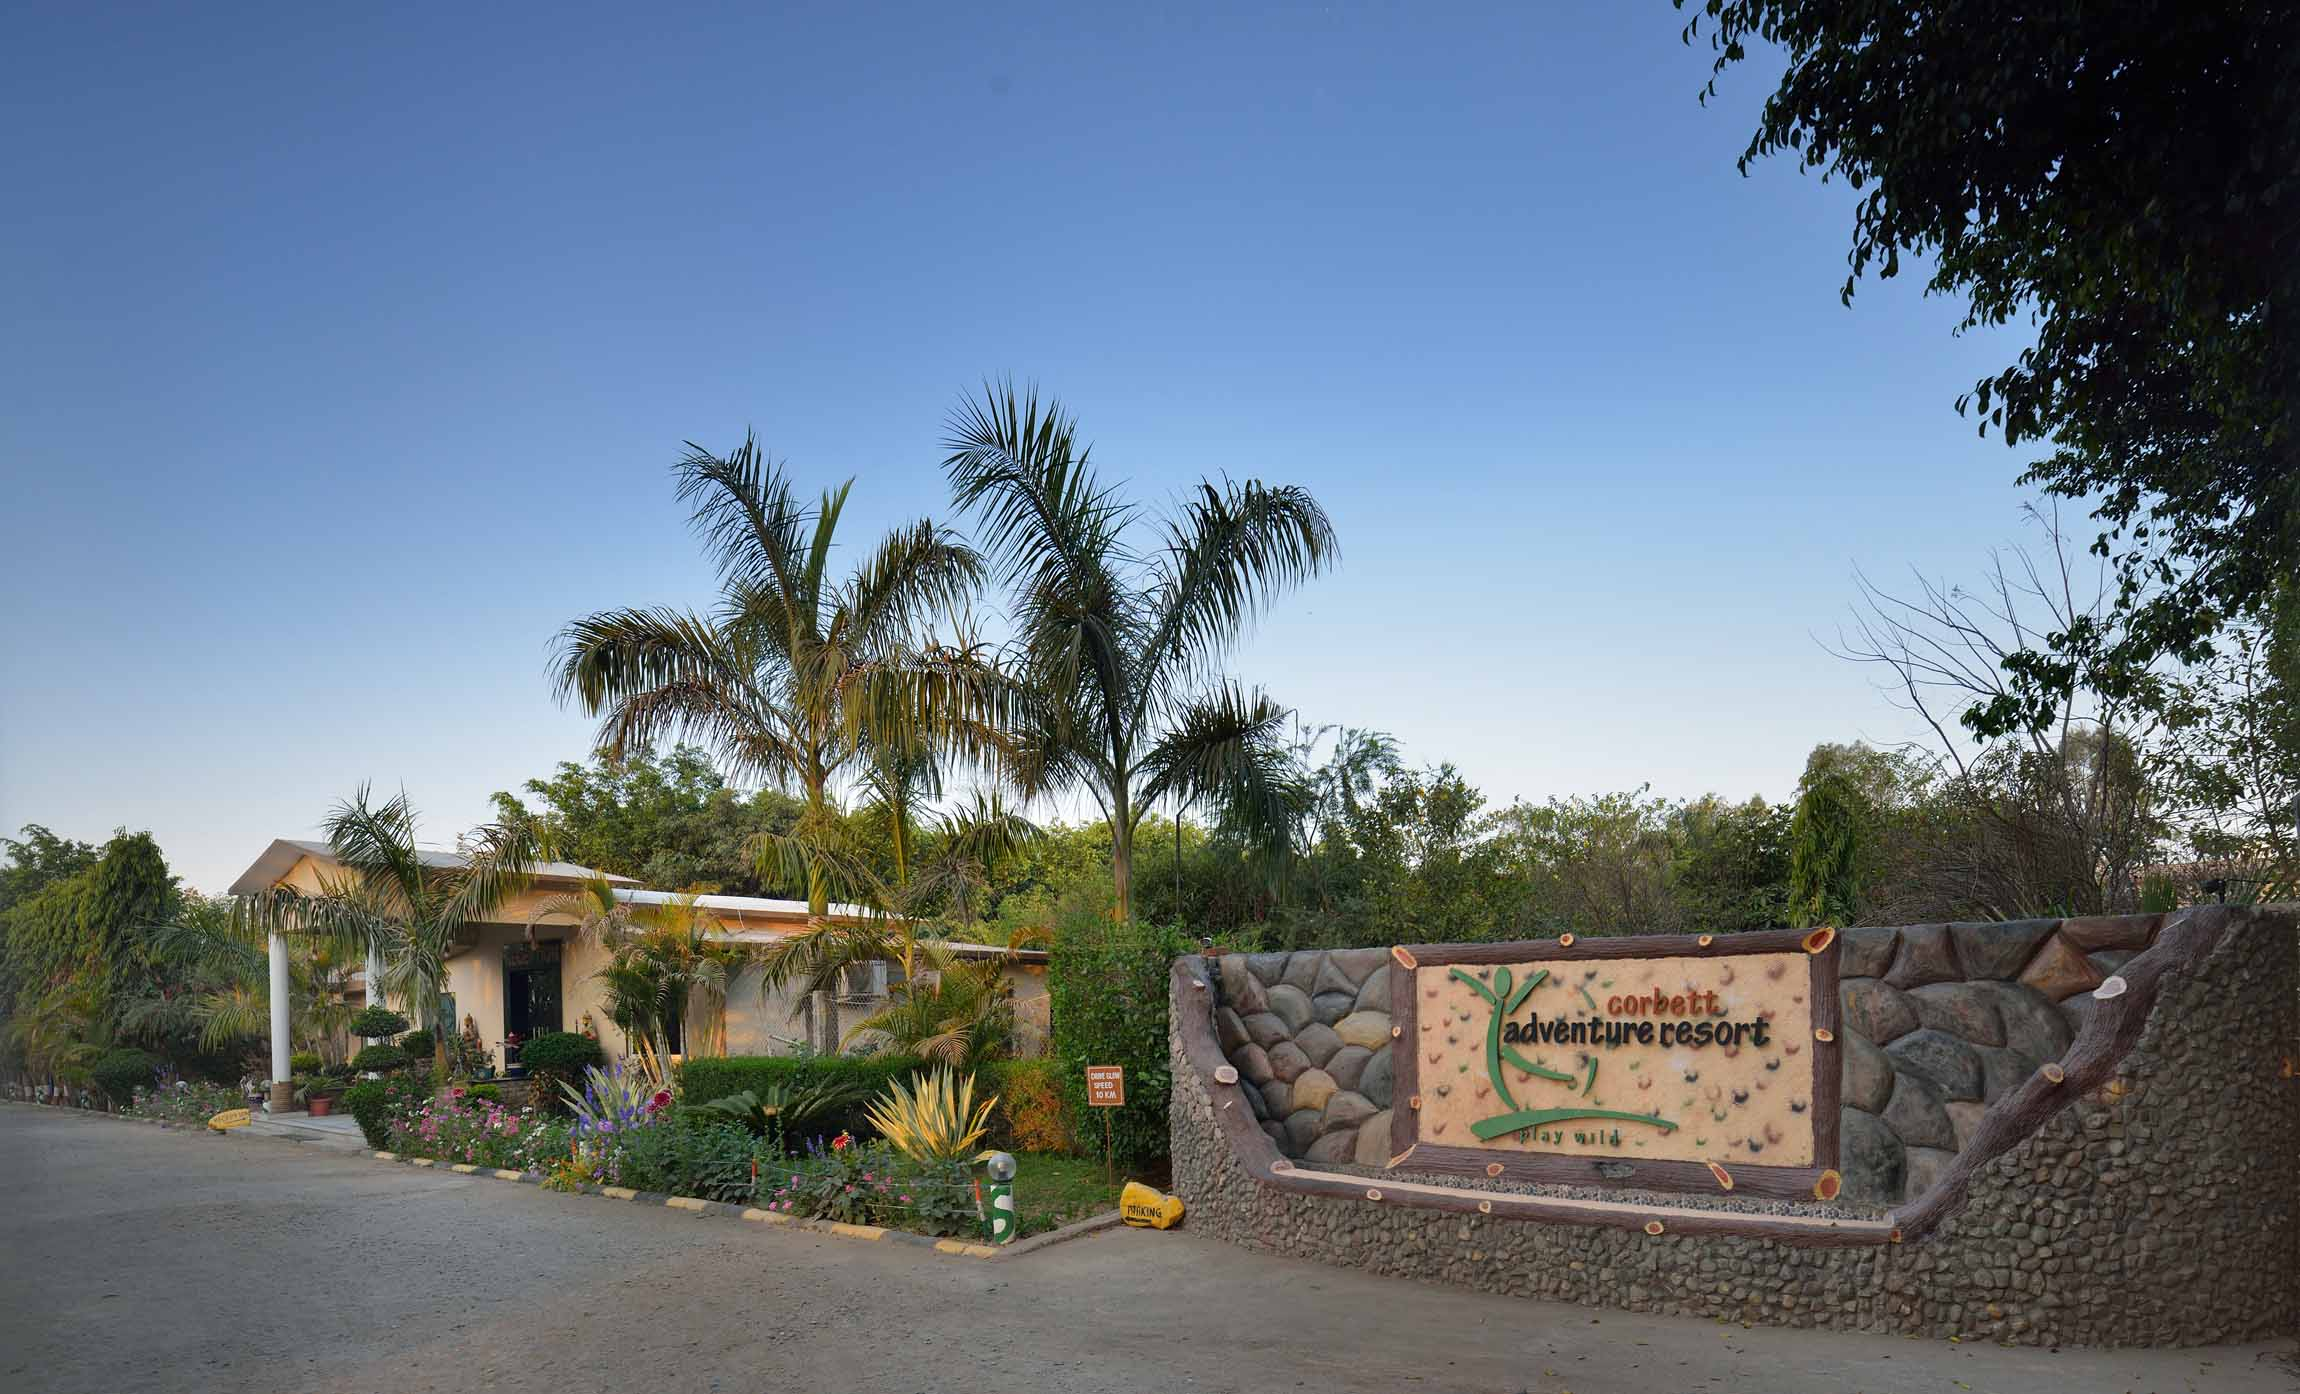 Corbett Adventure Resort In jim Corbett